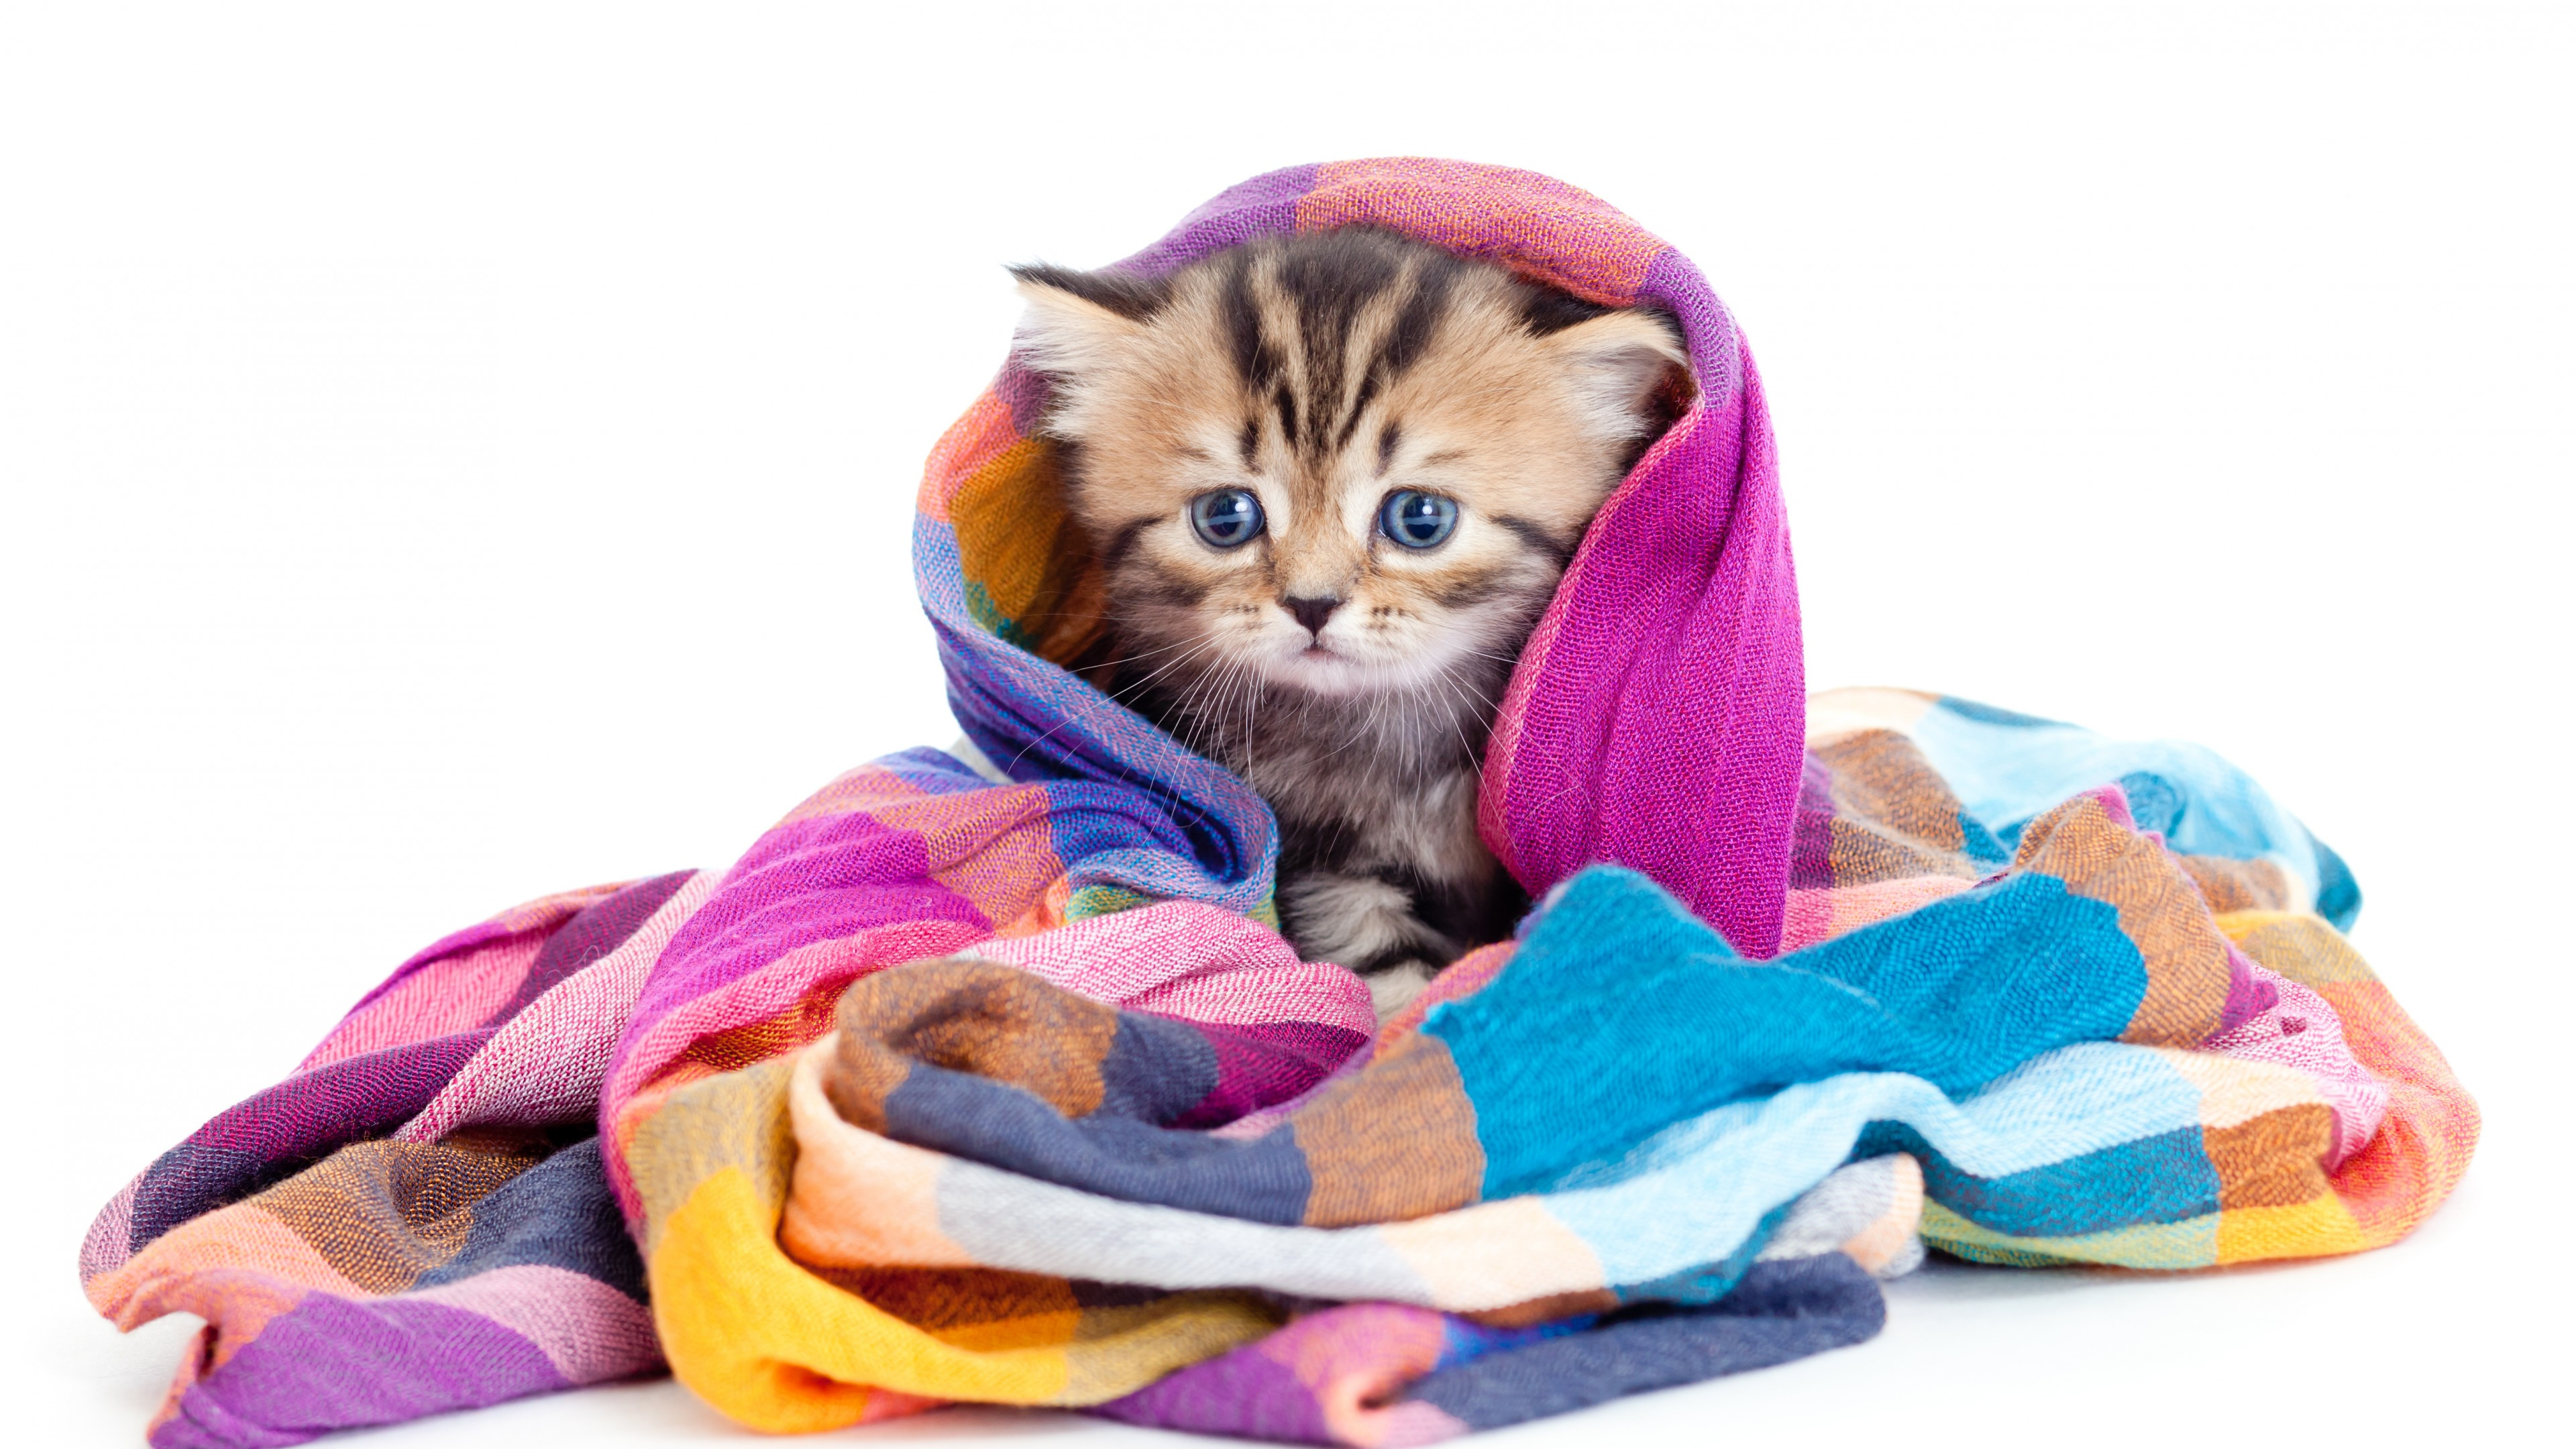 Wallpaper kitten, cute animals, 5k, Animals